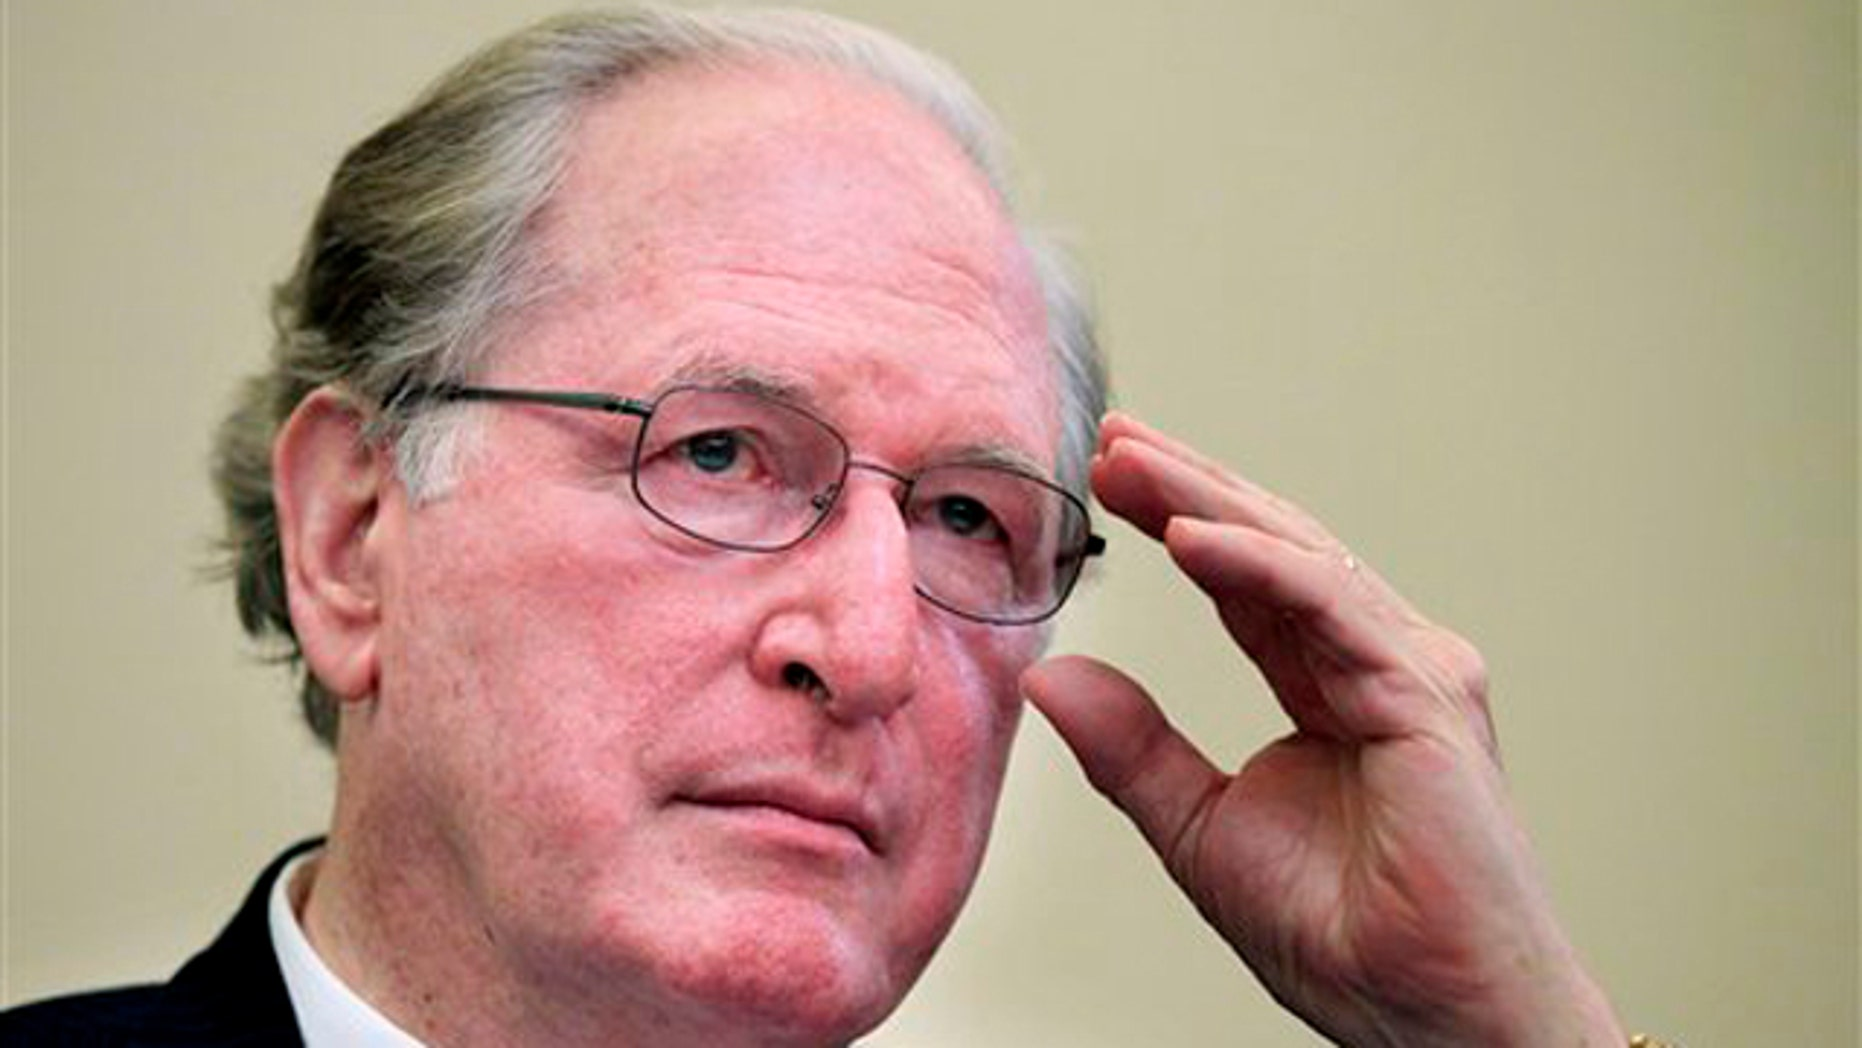 Sen. Jay Rockefeller is shown at a hearing on Capitol Hill in Washington July 13.